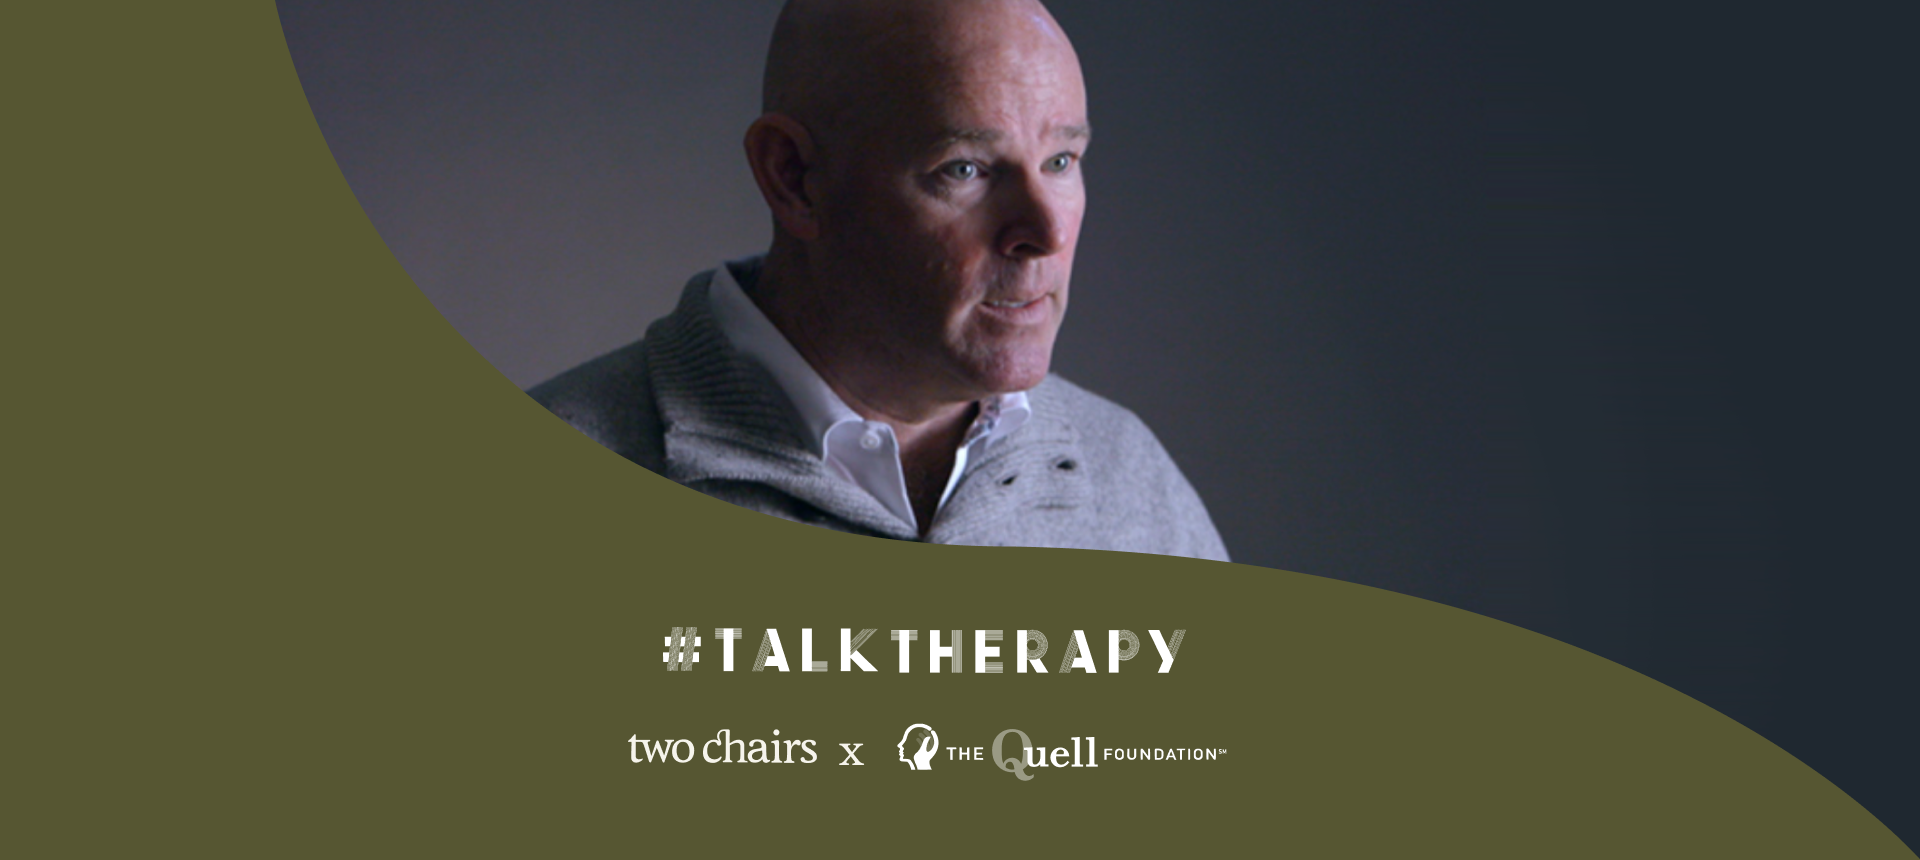 #TalkTherapy with Kevin Lynch, President of The Quell Foundation